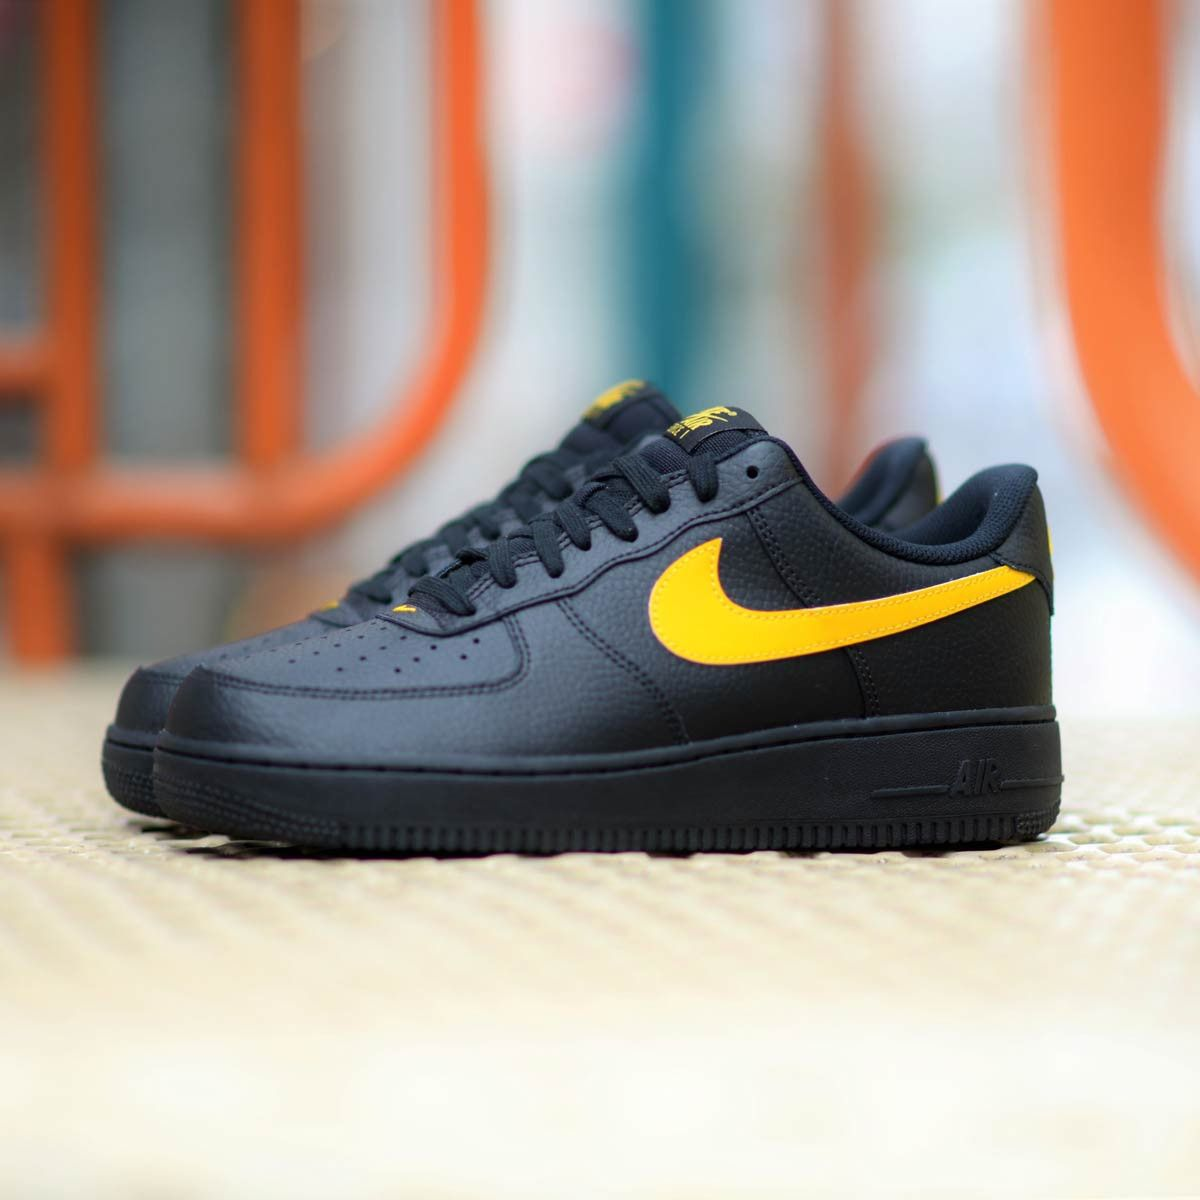 newest 0ad41 85b2a NIKE AIR FORCE 1 VLONE LOW BLACK YELLOW SWISH AA4083 002